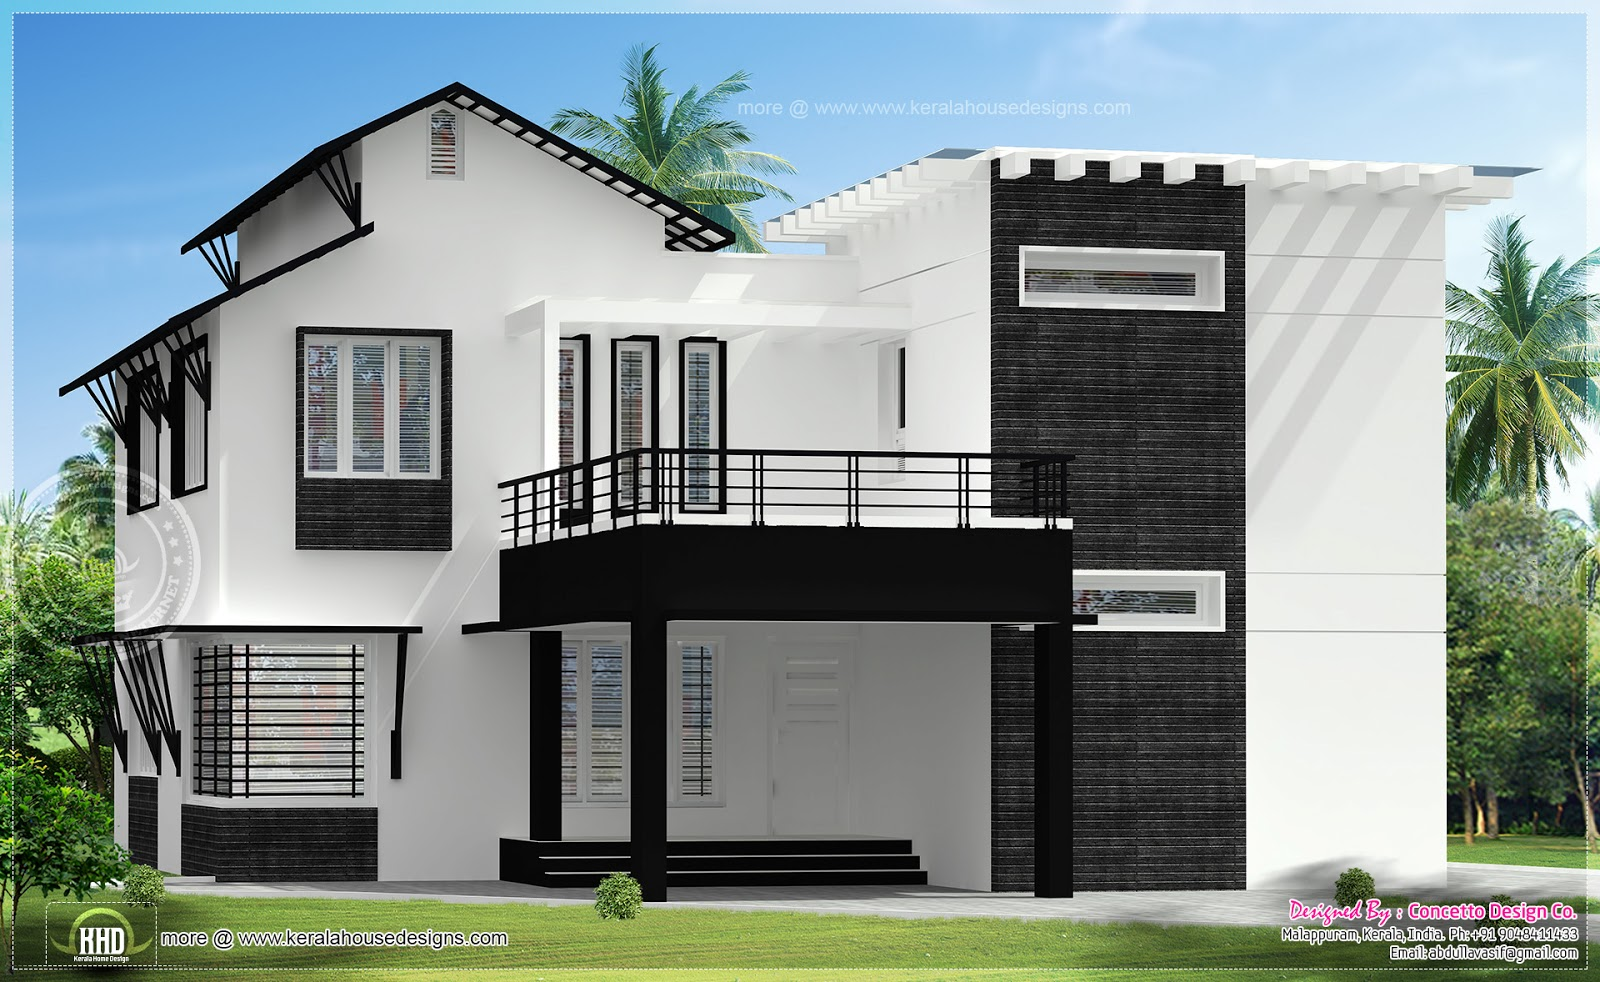 Elevation Designs For Ground Floor Building : Different house exteriors by concetto design kerala